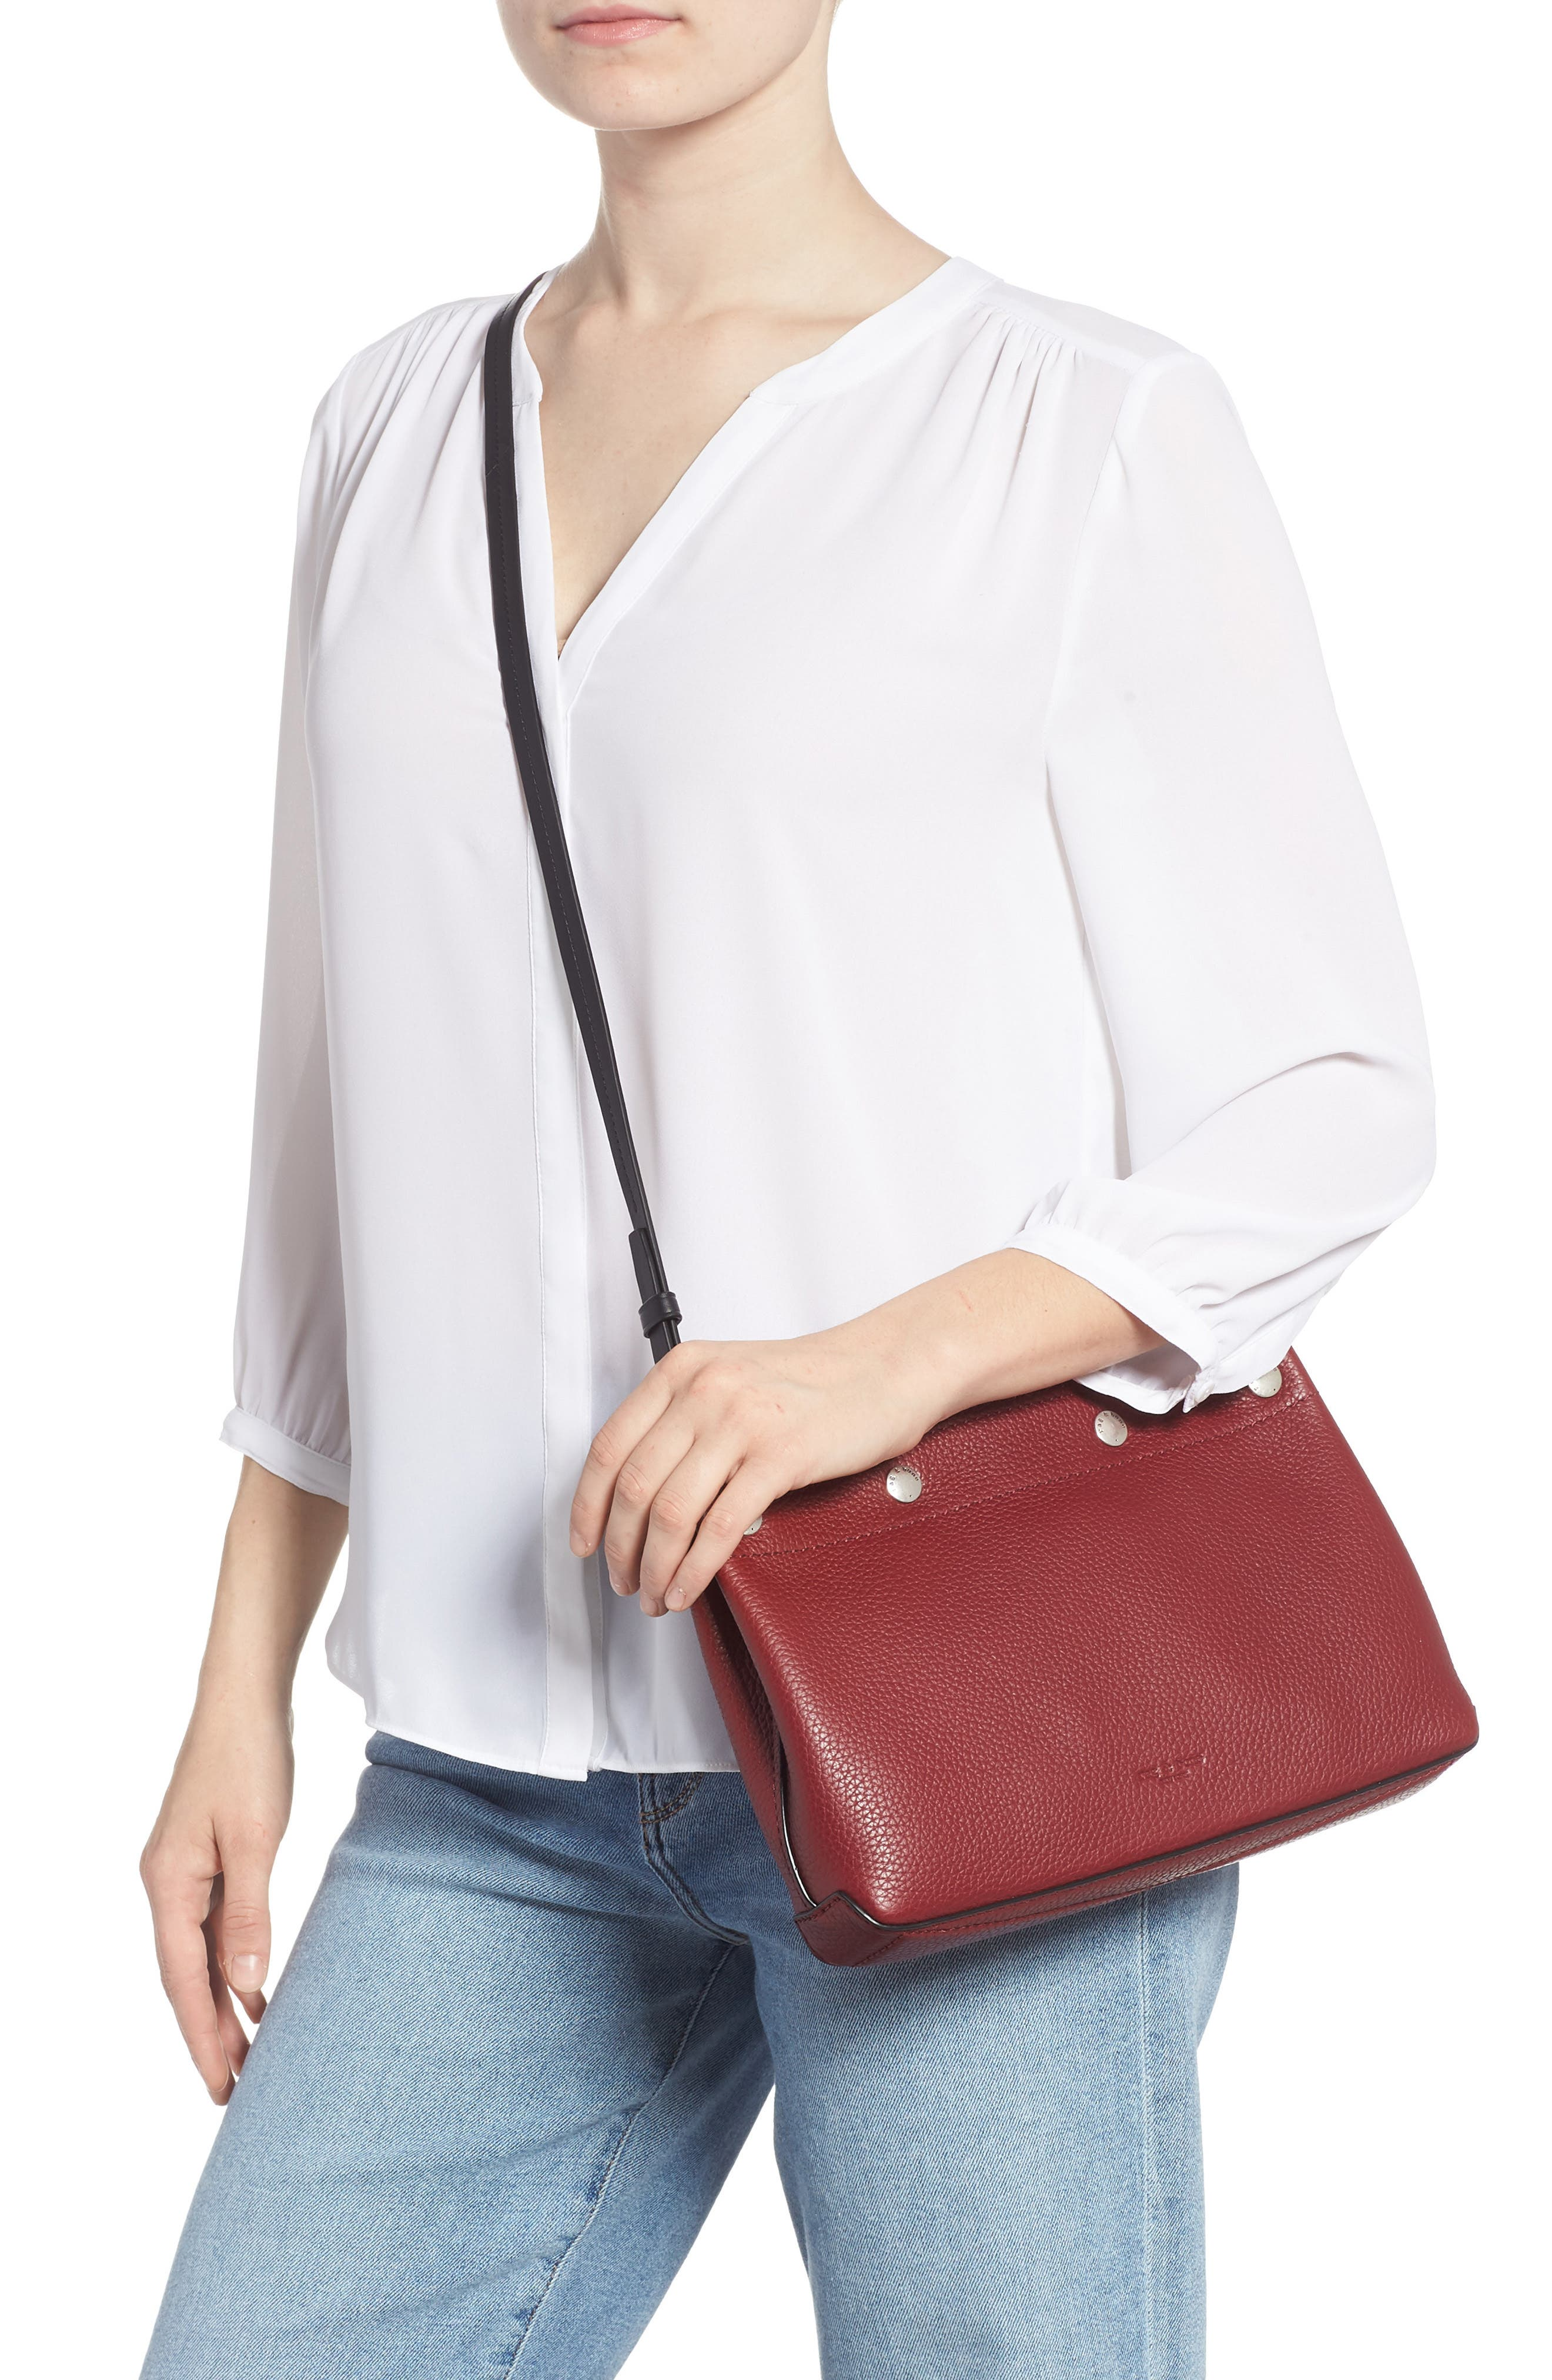 Compass Leather Crossbody Bag,                             Main thumbnail 1, color,                             BIKING RED